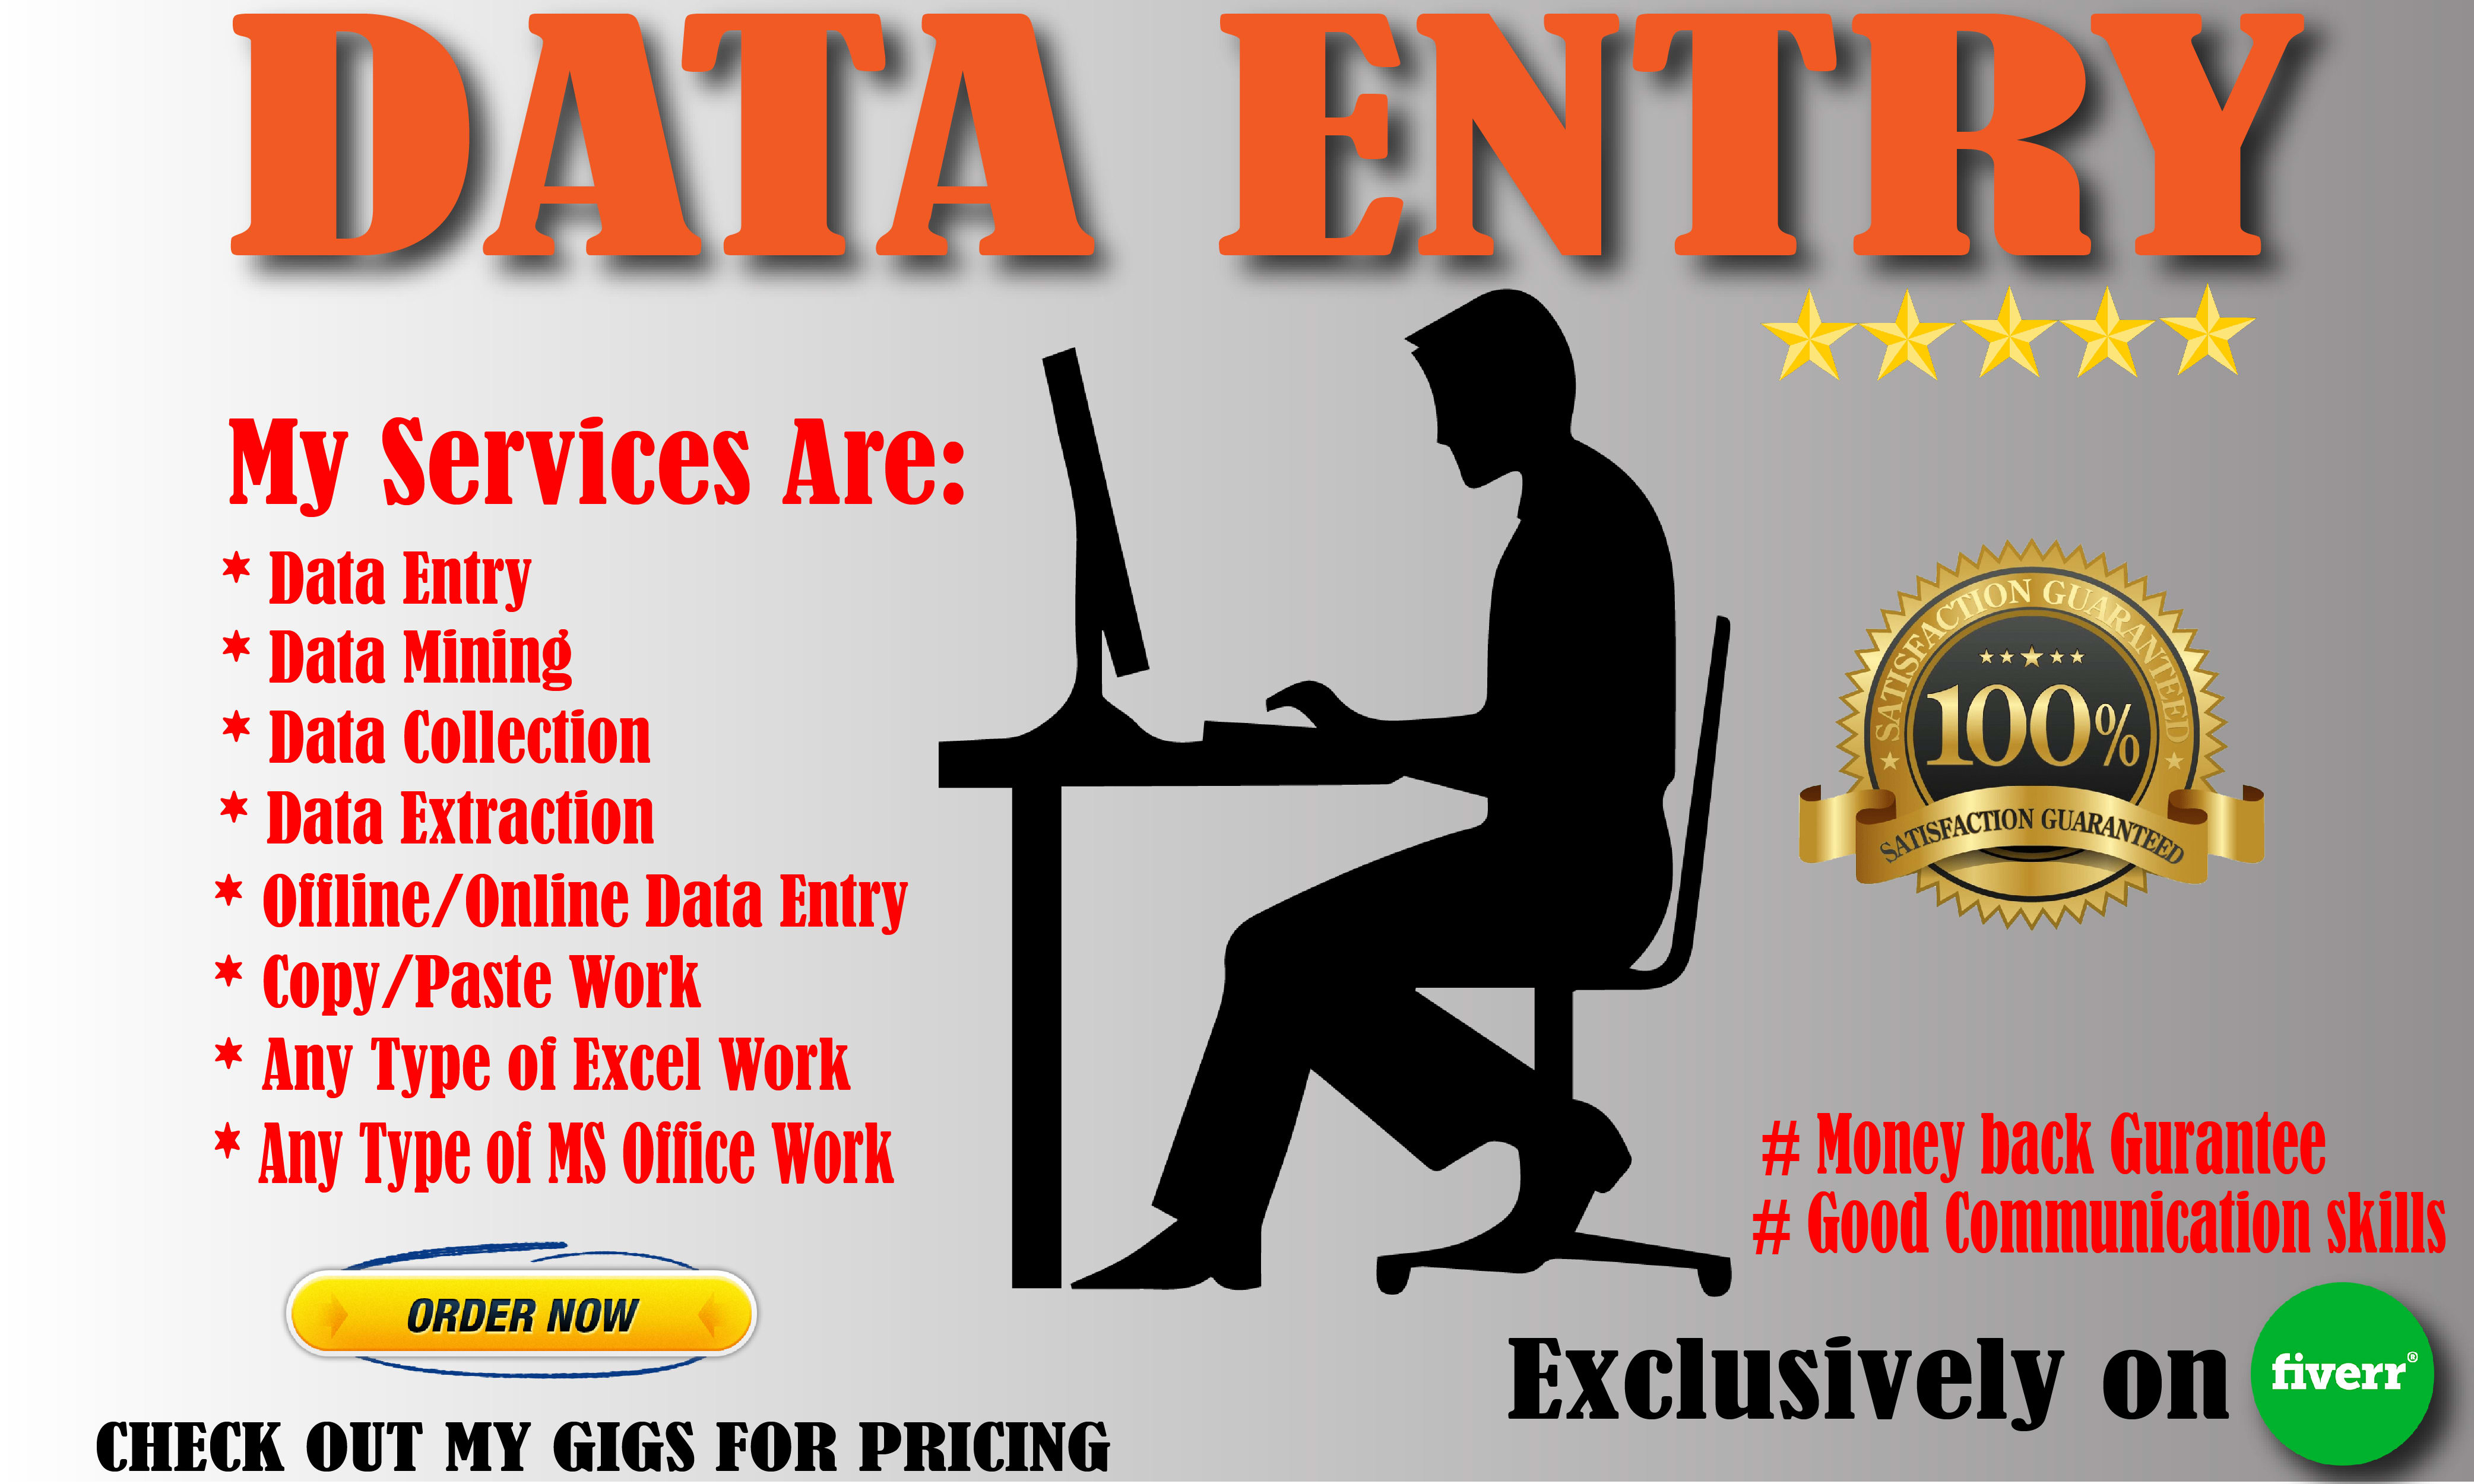 I will do any type of data entry in 2 hours